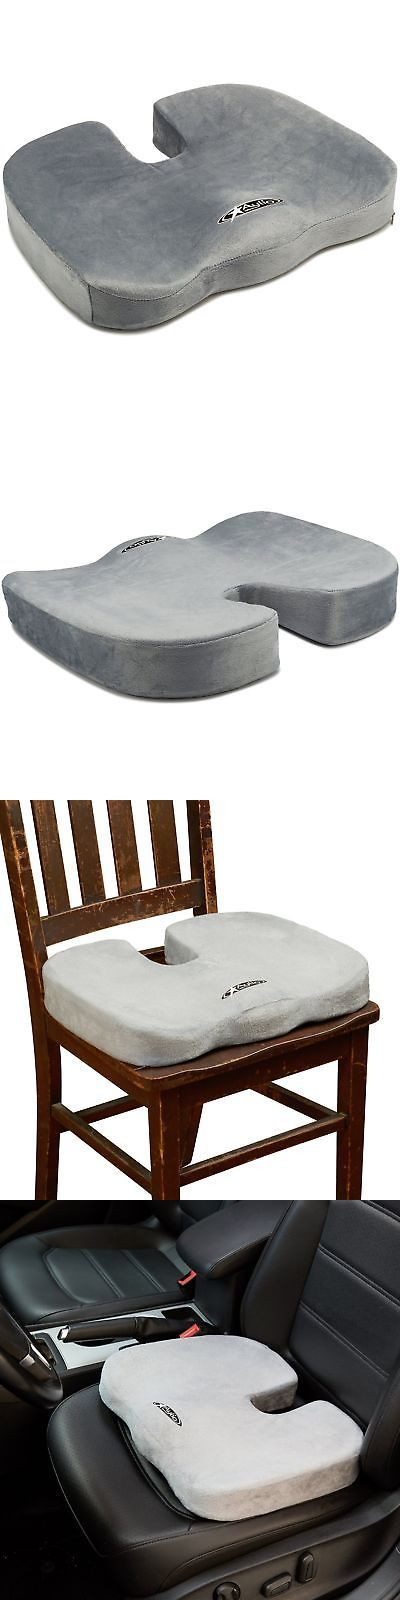 Massage Pillows and Bolsters: Coccyx Seat Cushion Back Support Tailbone And Sciatica Pain Relief Washable Cover -> BUY IT NOW ONLY: $49.47 on eBay!